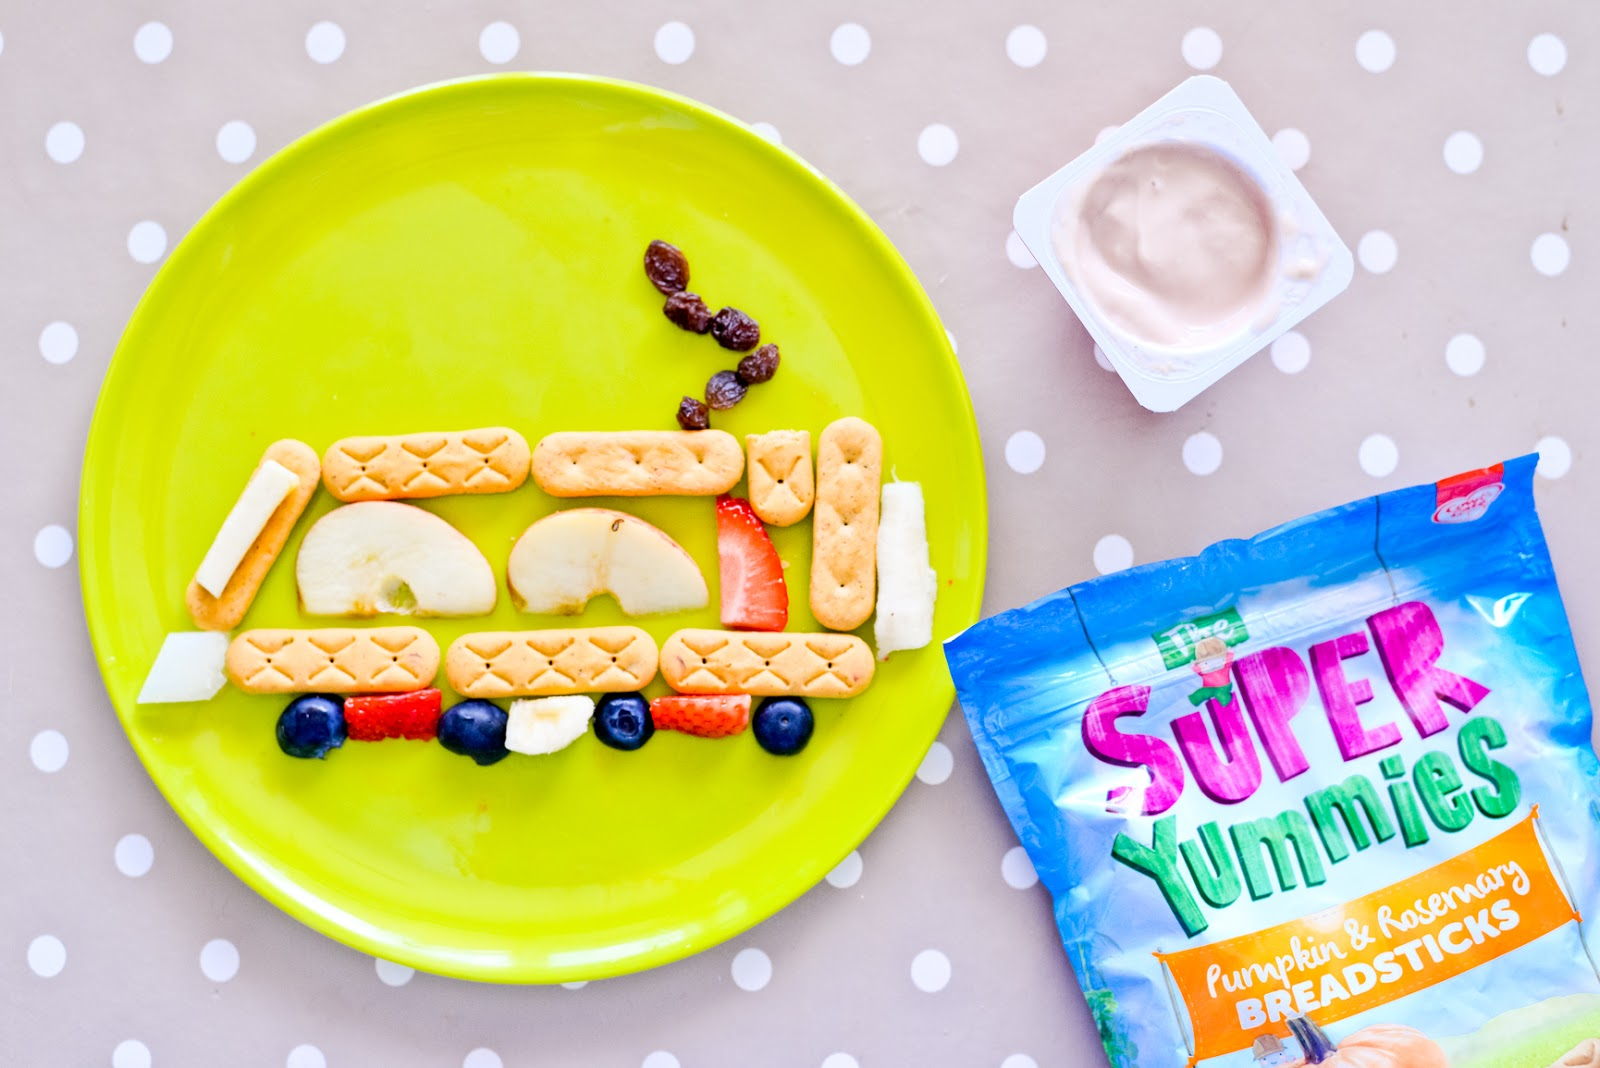 fun snack ideas for kids, toddler snack ideas, toddler snacks, healthy snacks for kids, train snack idea